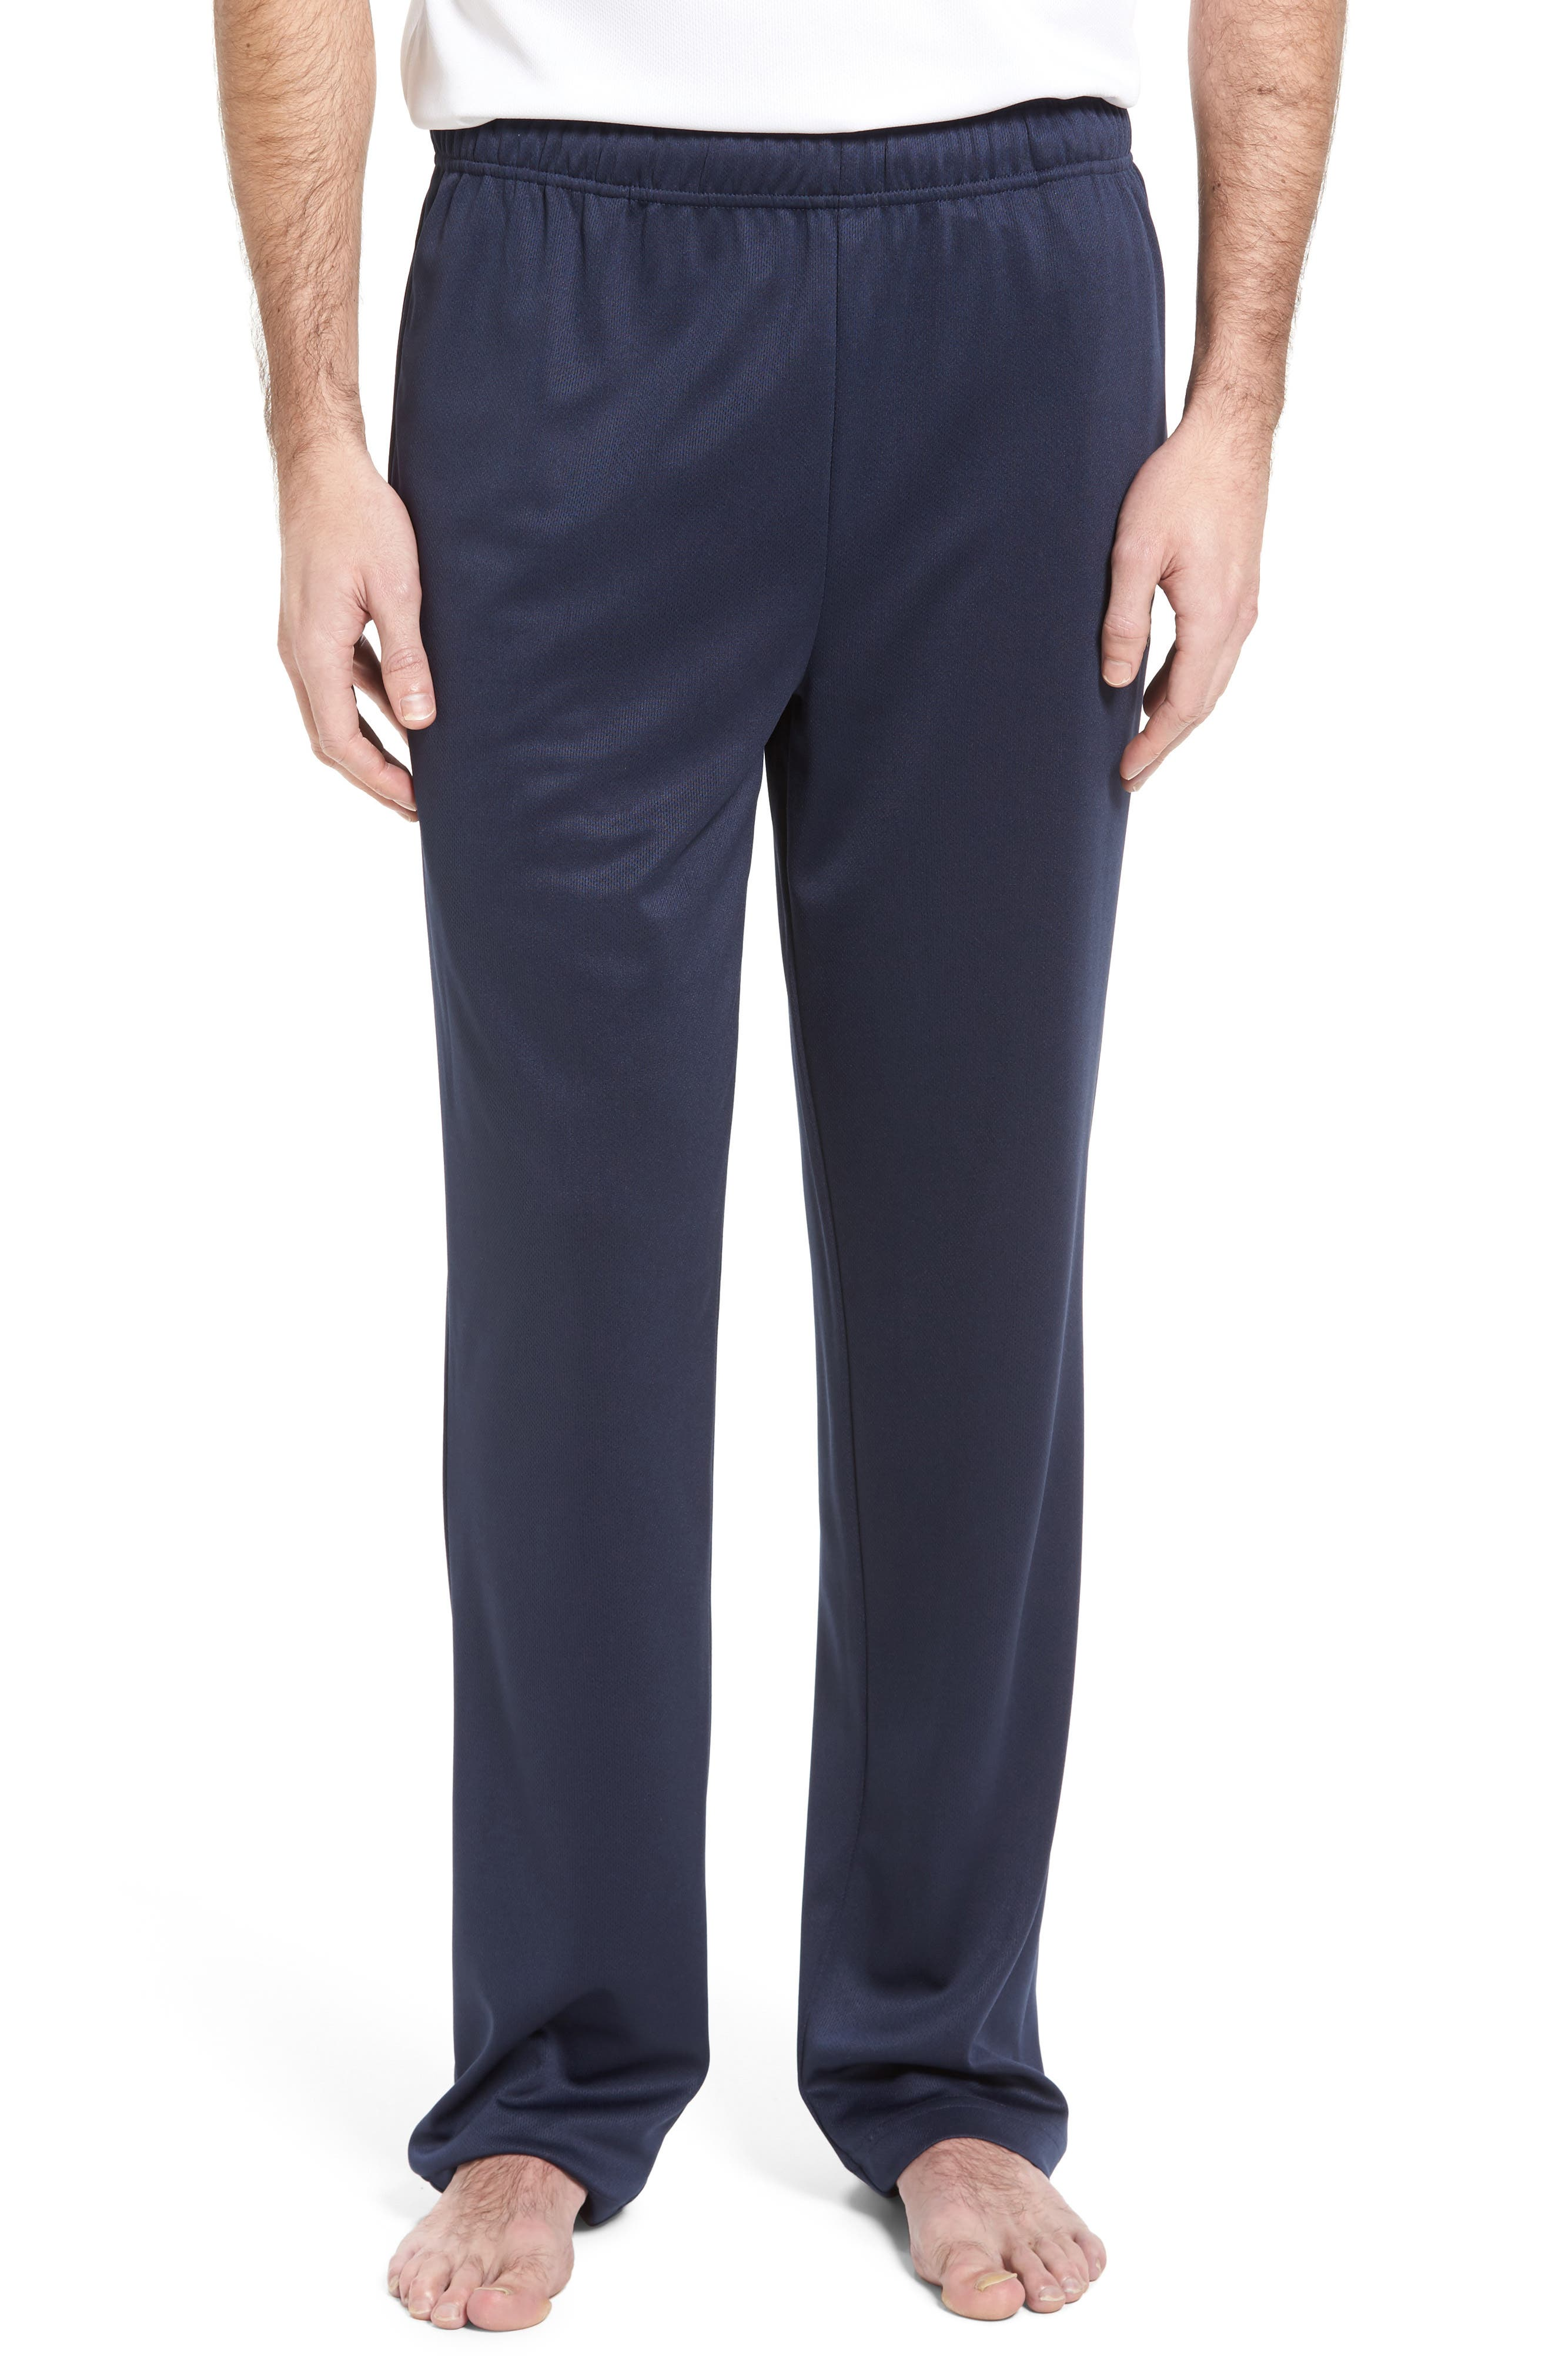 Work Out Lounge Pants,                             Main thumbnail 1, color,                             Navy